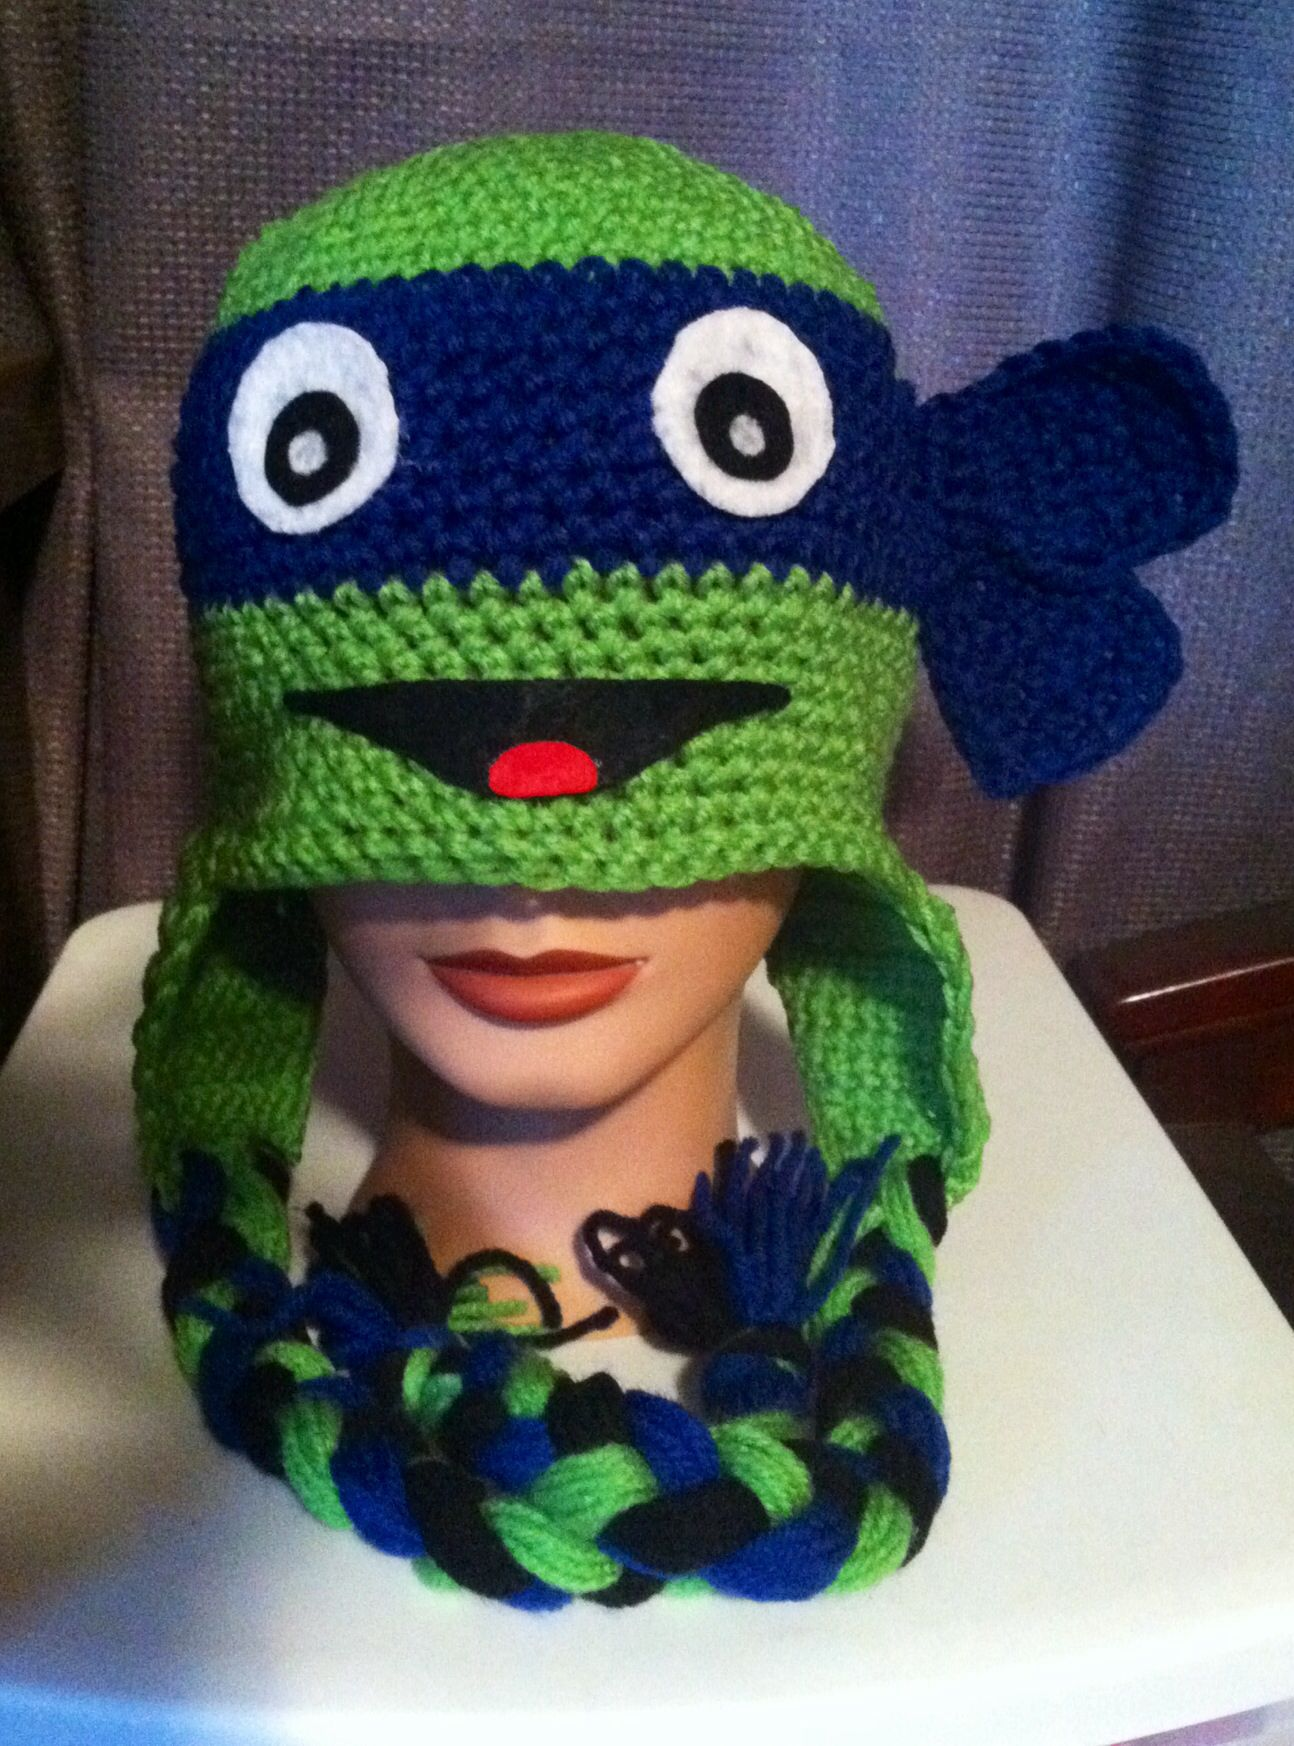 Crochet Pattern For A Turtle Hat : Crocheted Ninja Turtle Hat to crochet... Pinterest